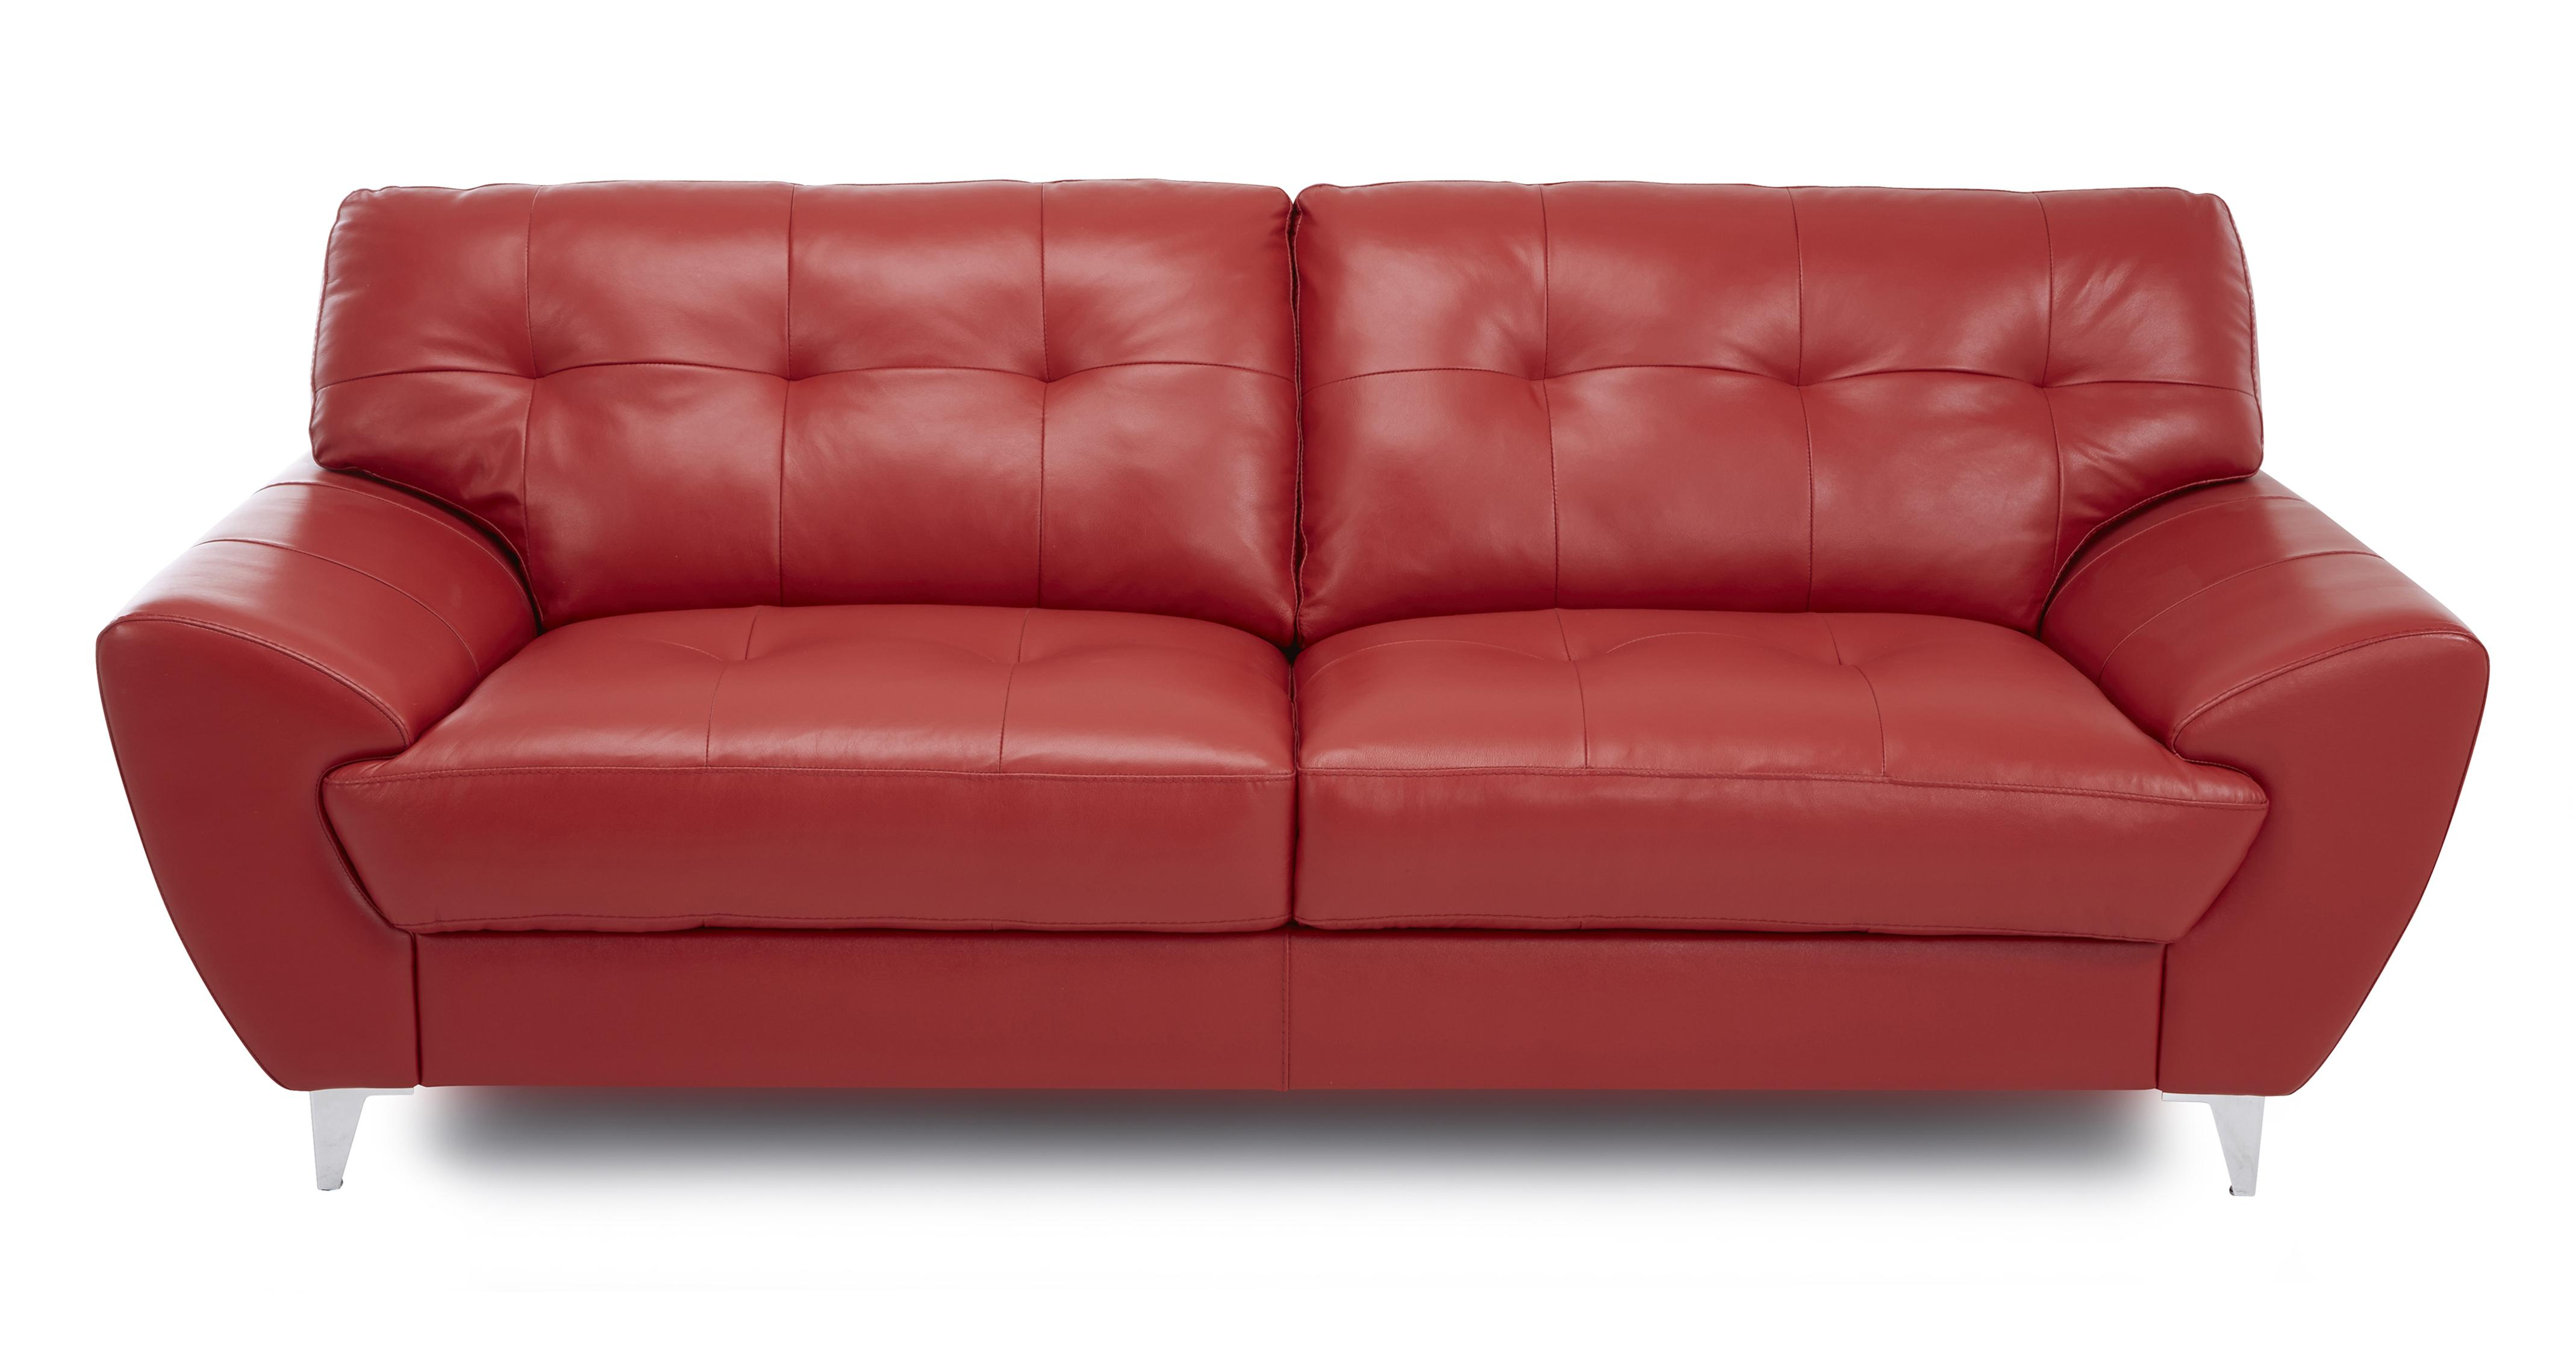 DFS Fabia Red Leather Sofa Set Inc 3 Seater 2 Seater